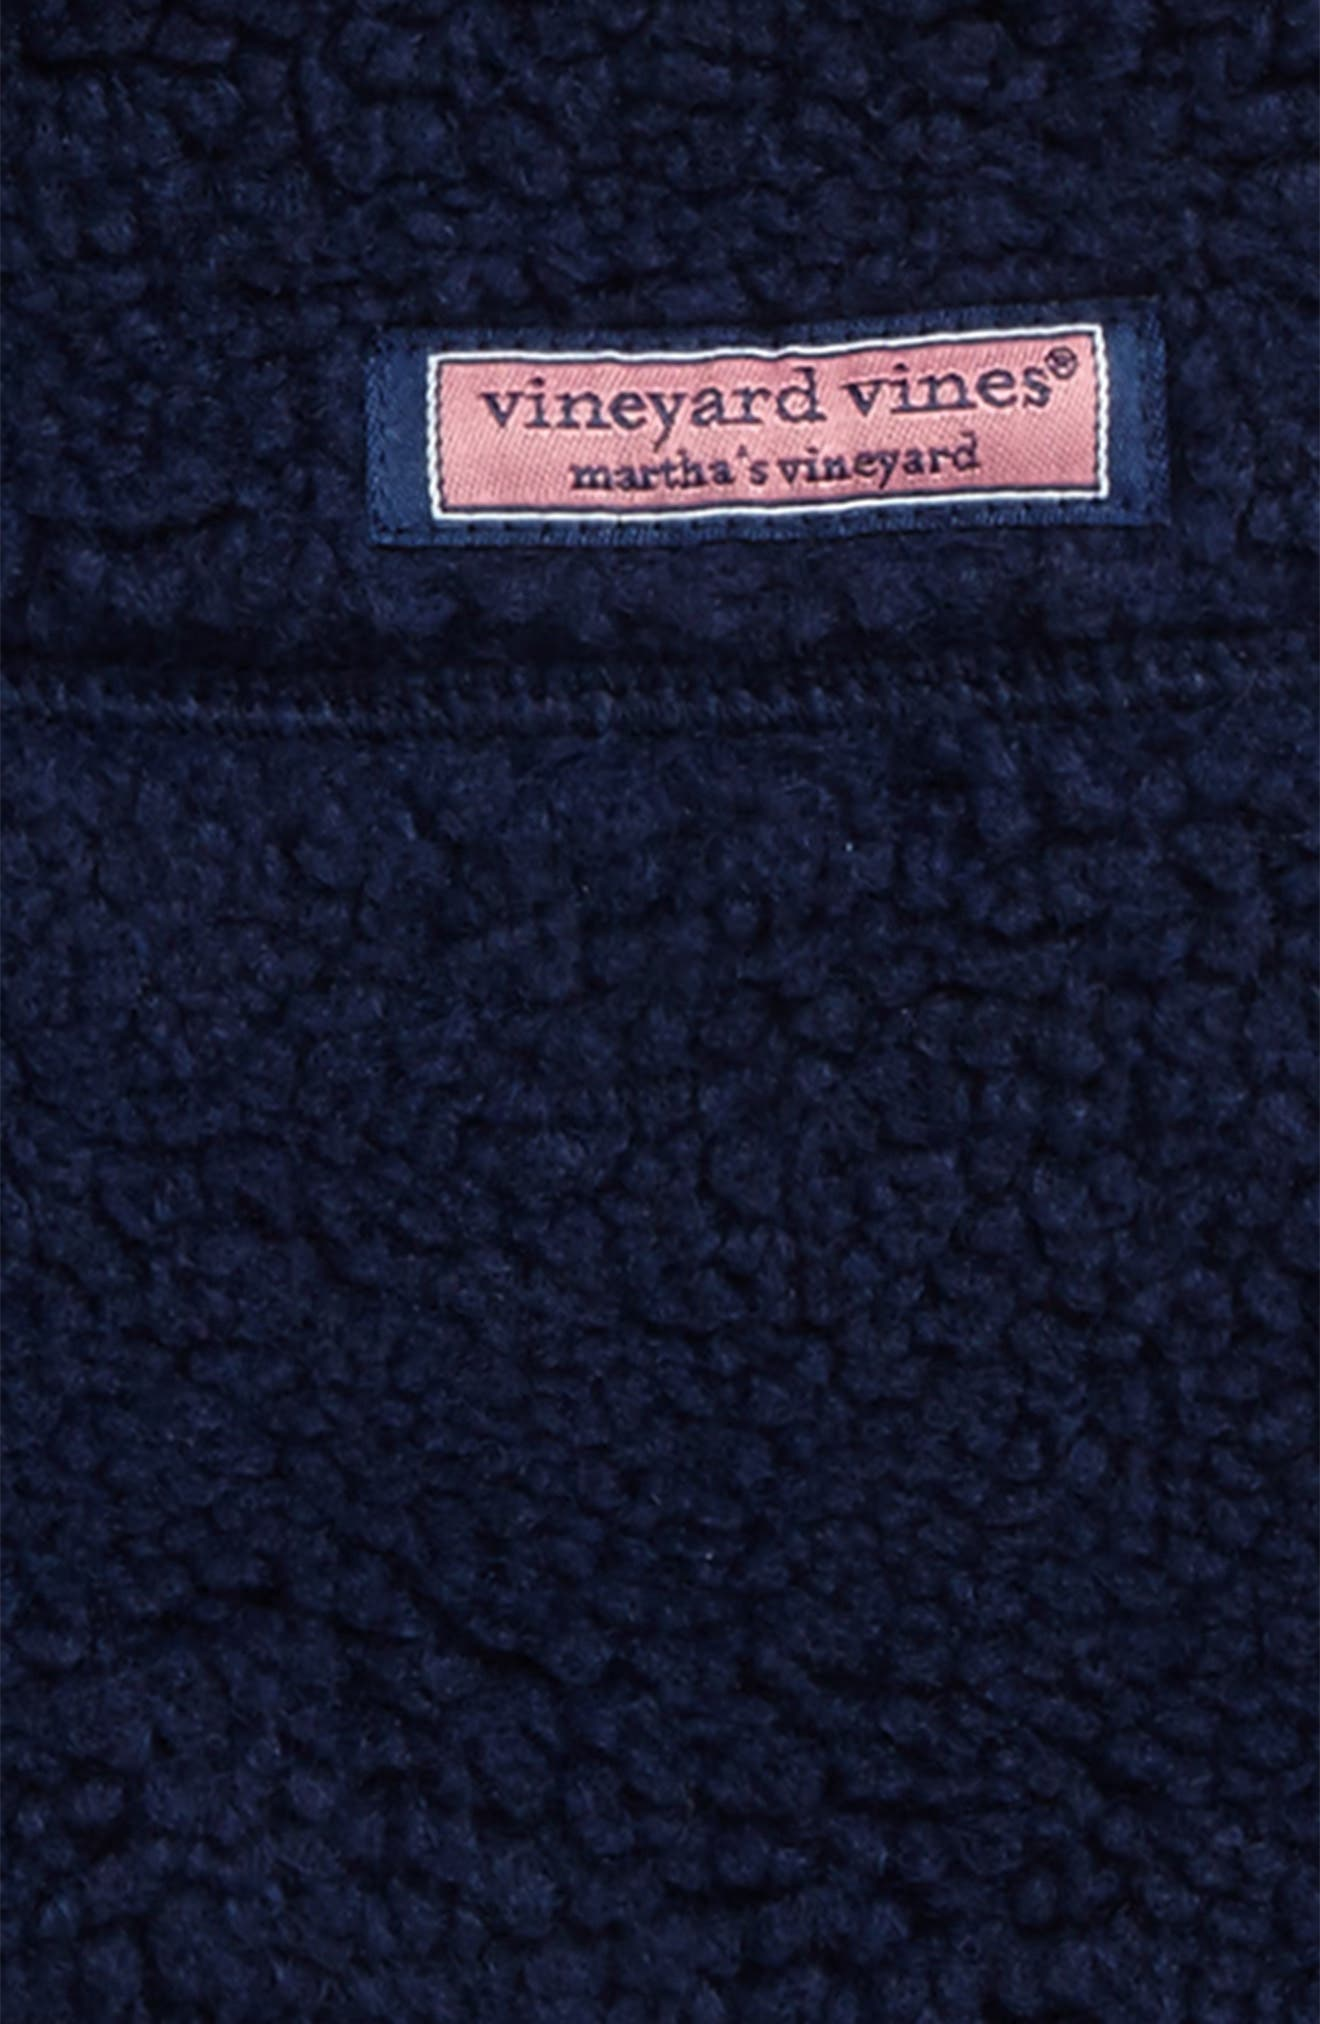 Alternate Image 2  - vineyard vines Fleece Zip Vest (Toddler Boys & Little Boys)